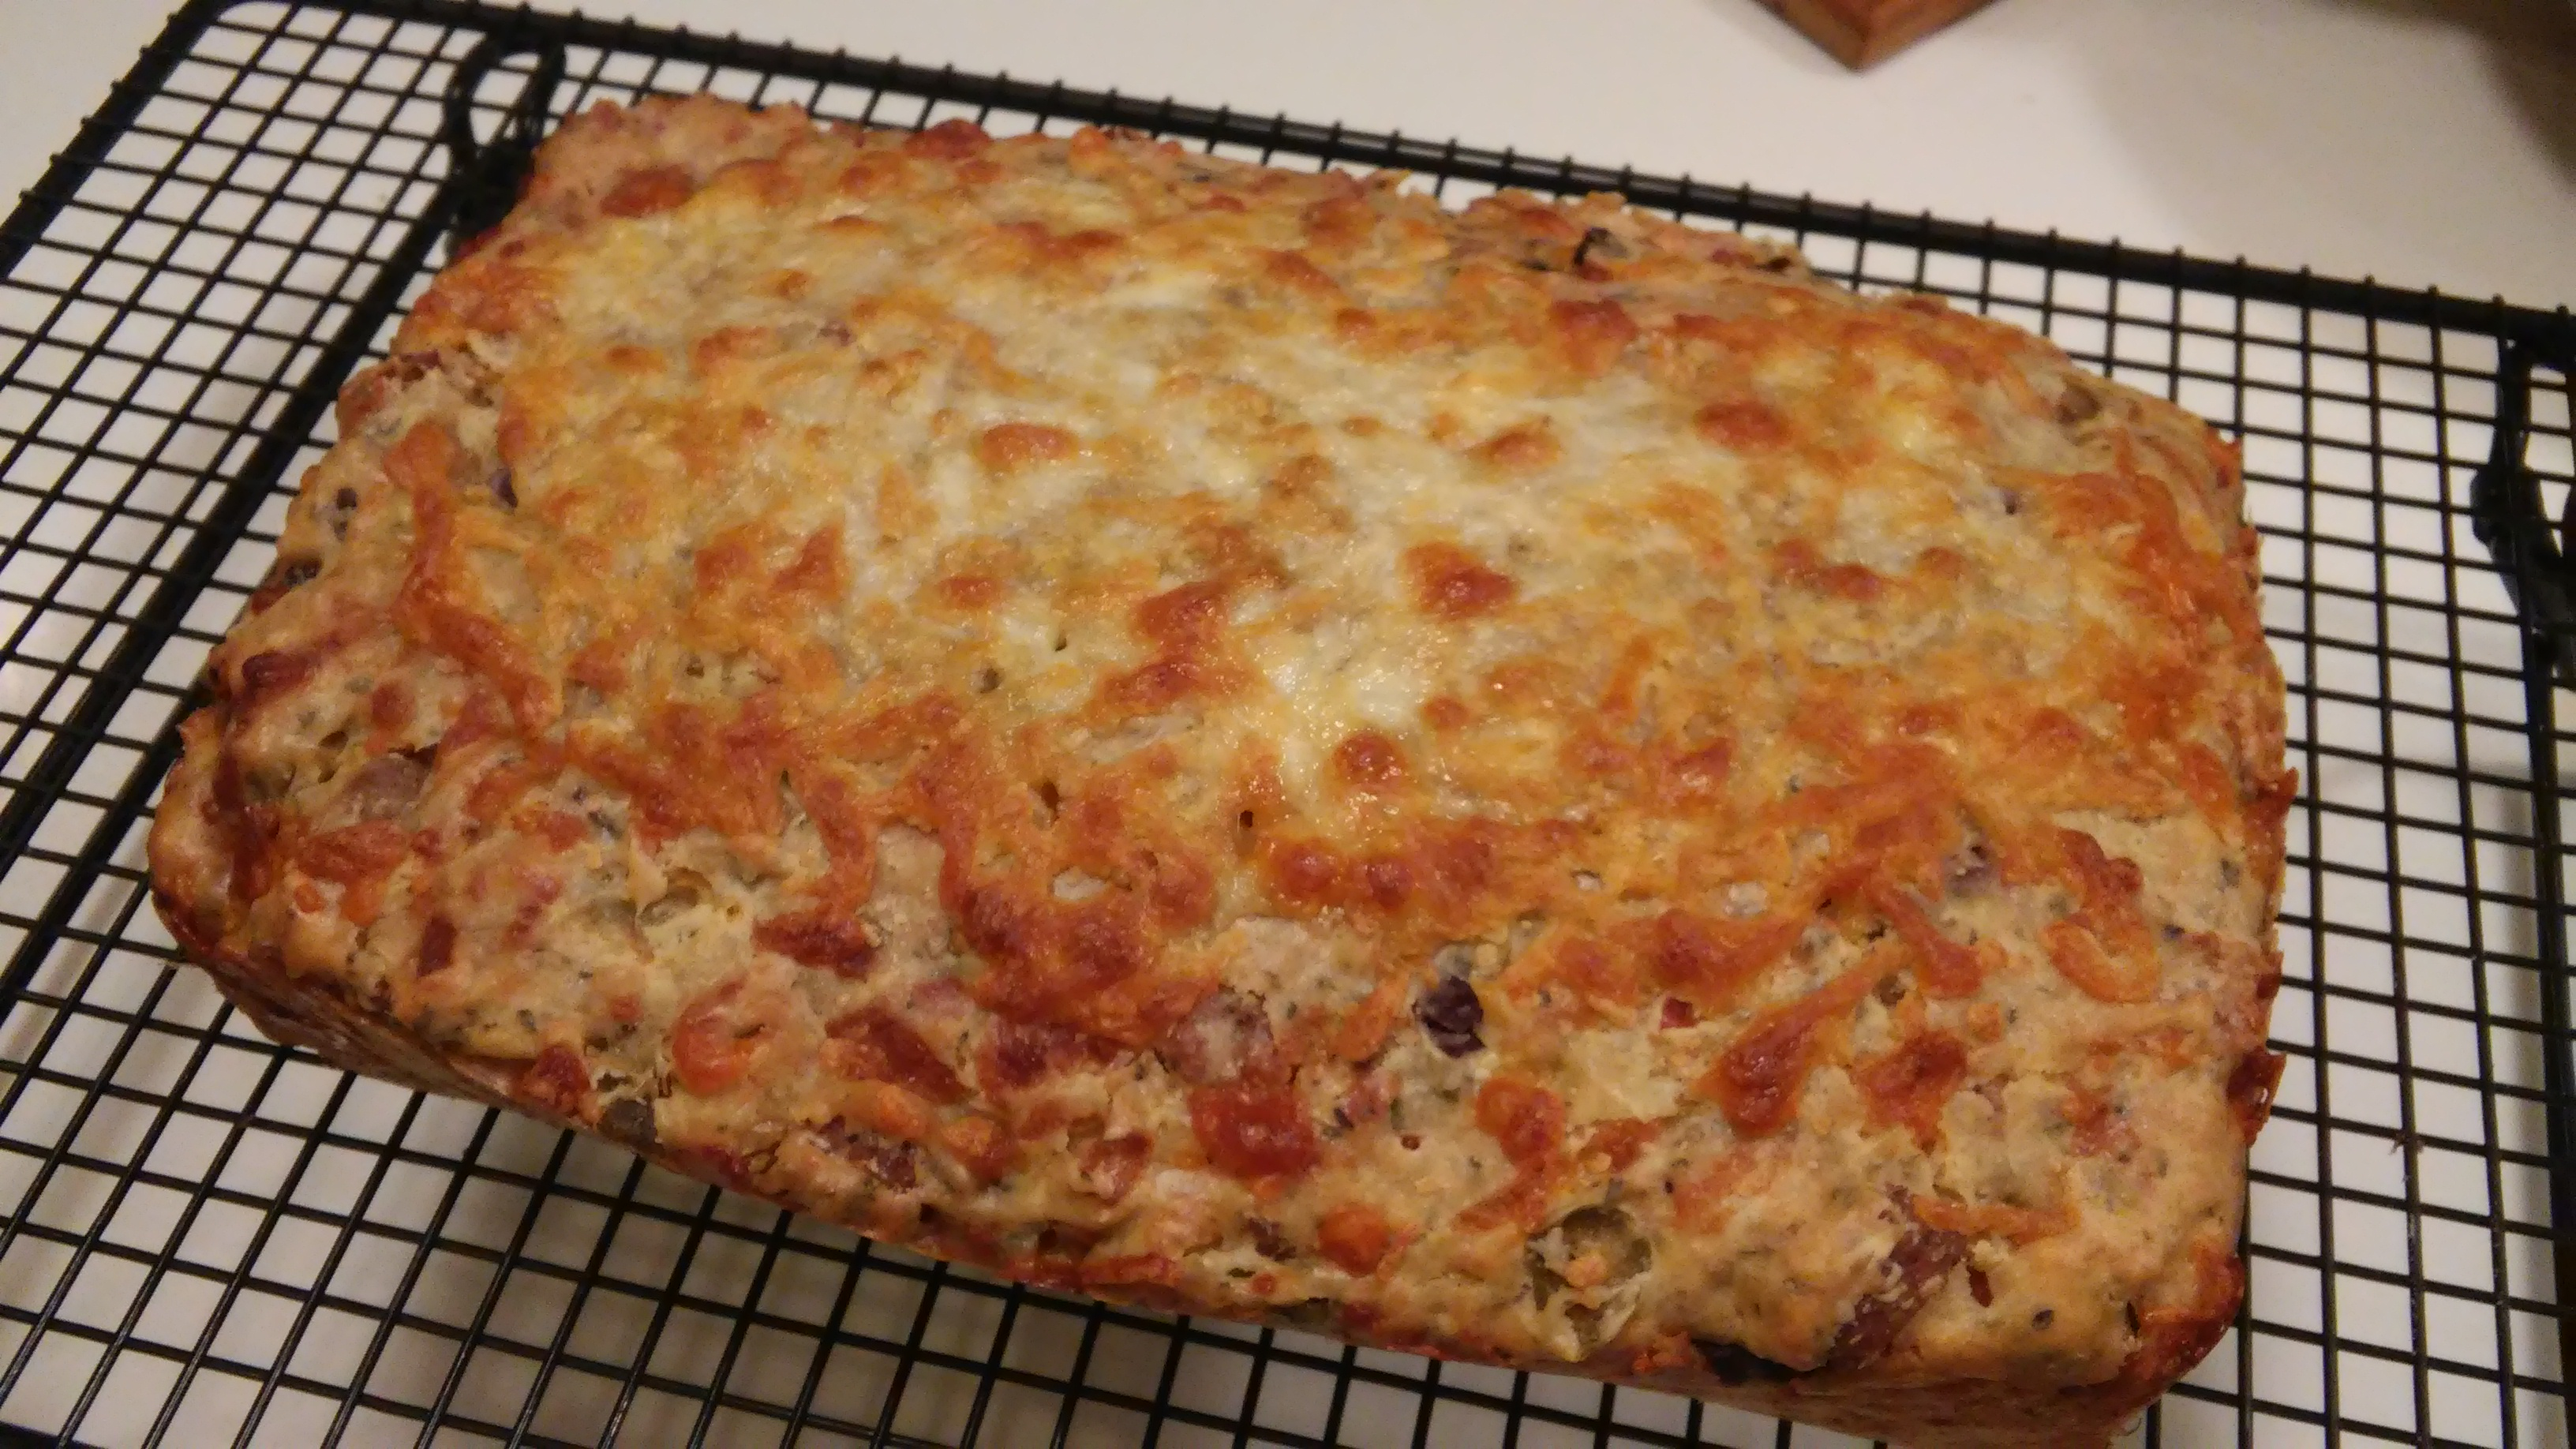 Spicy Italian Sausage and Mozzarella Beer Bread Curt McDowell